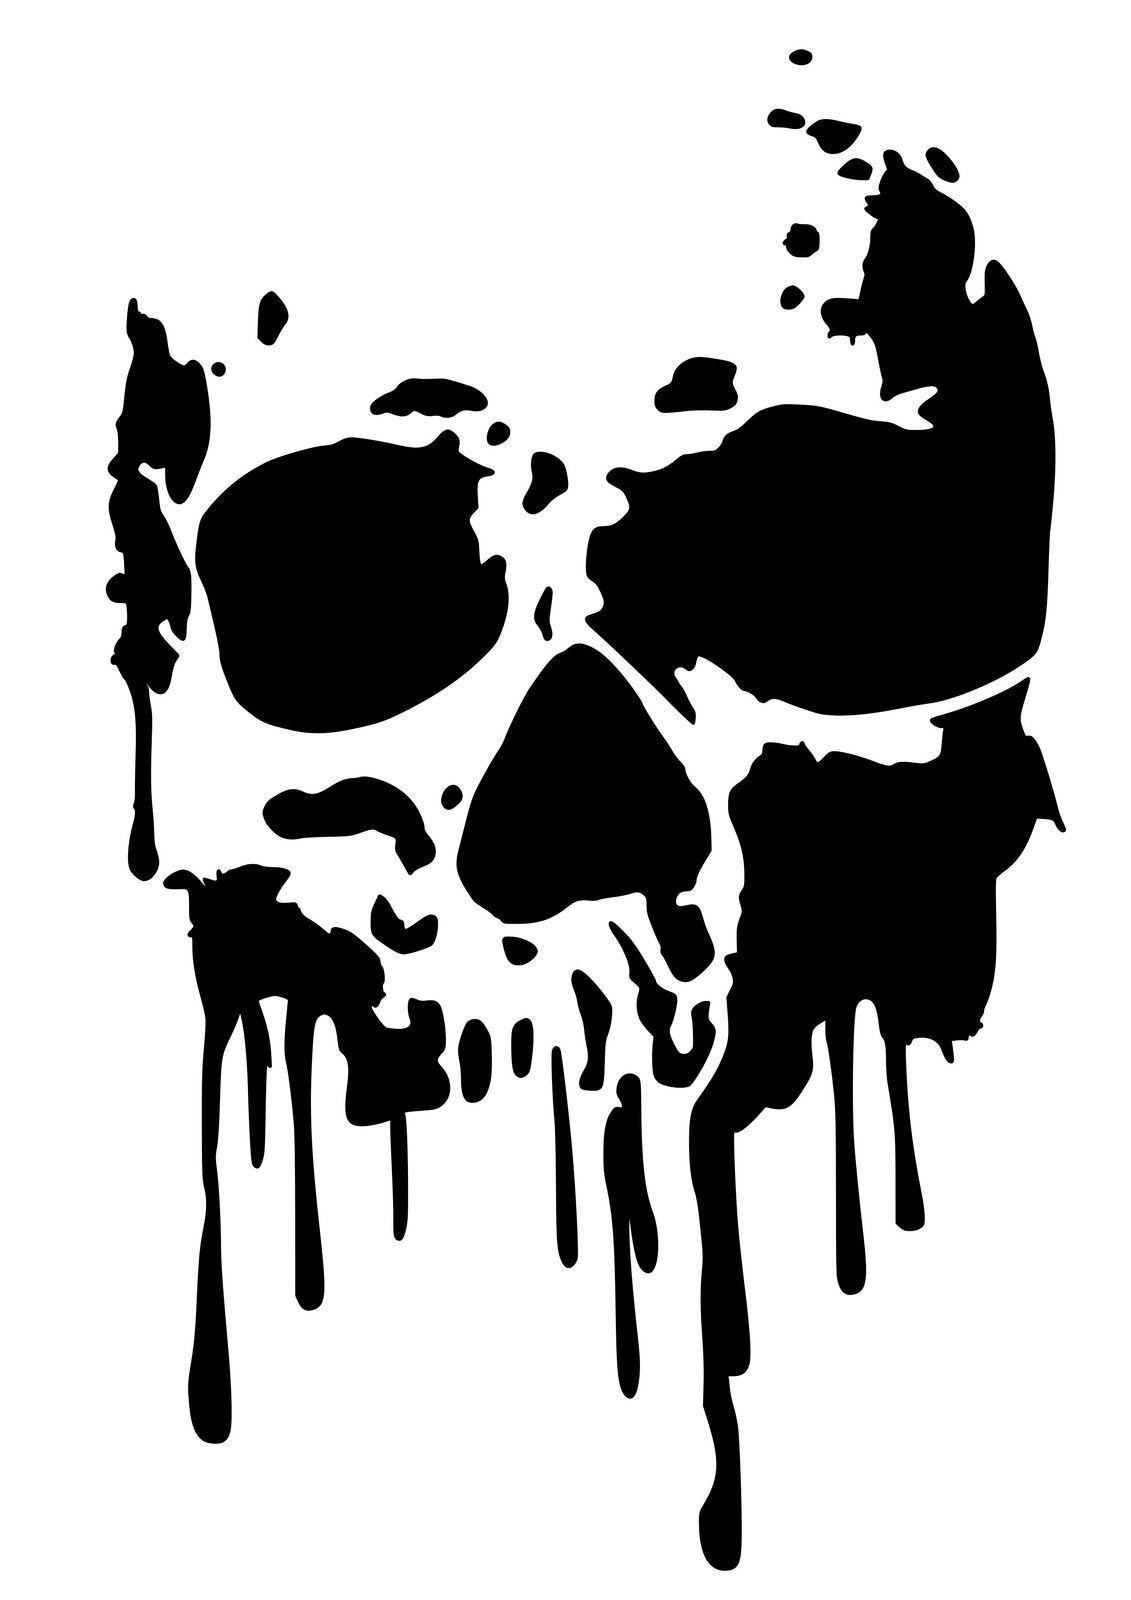 High Detail Dripping Skull Airbrush Stencil - Free Uk Postage For - Free Printable Airbrush Stencils